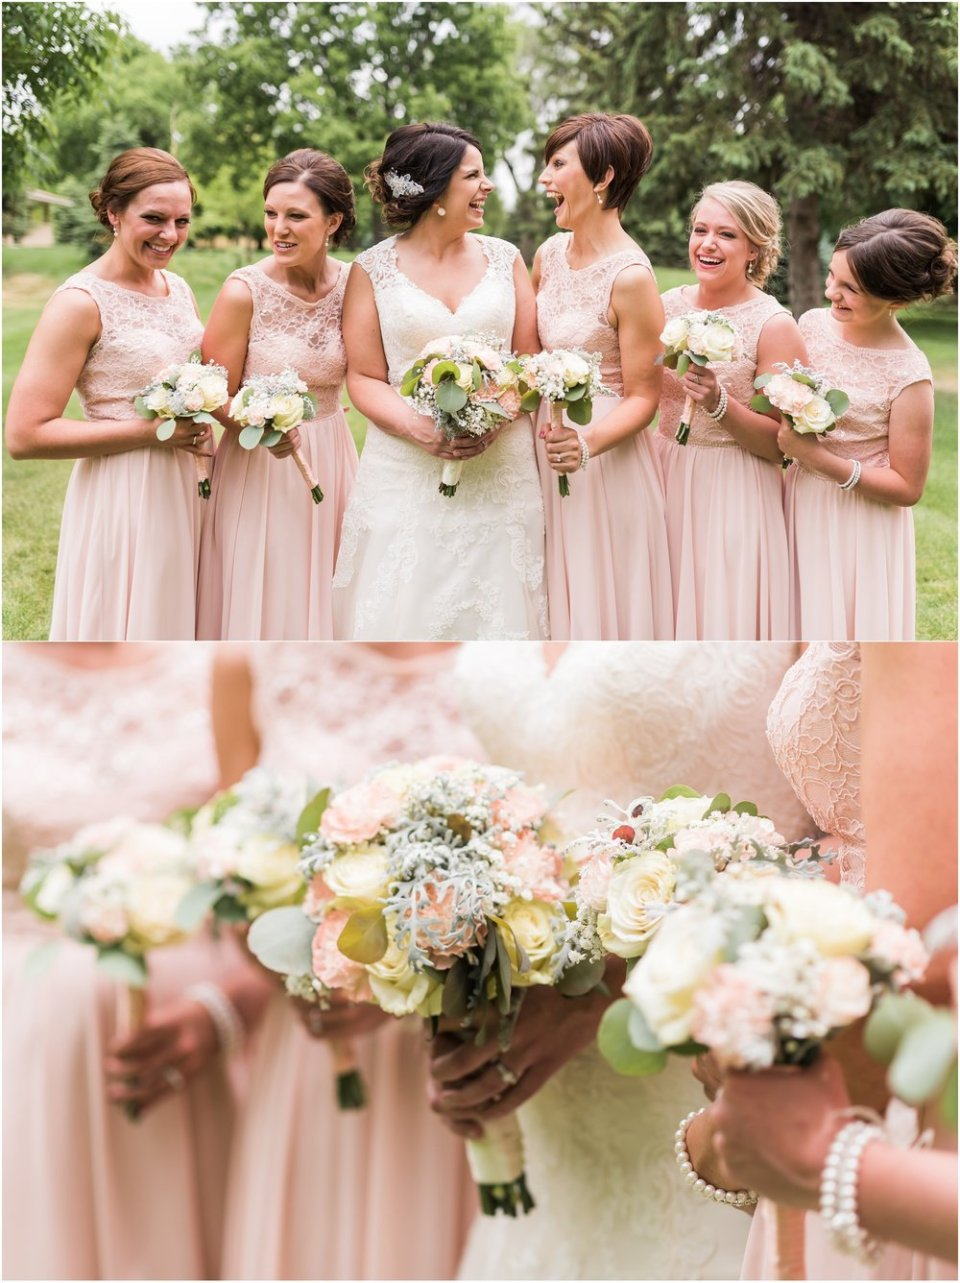 Blush bridesmaid dresses and photos | Maddie Peschong Photography